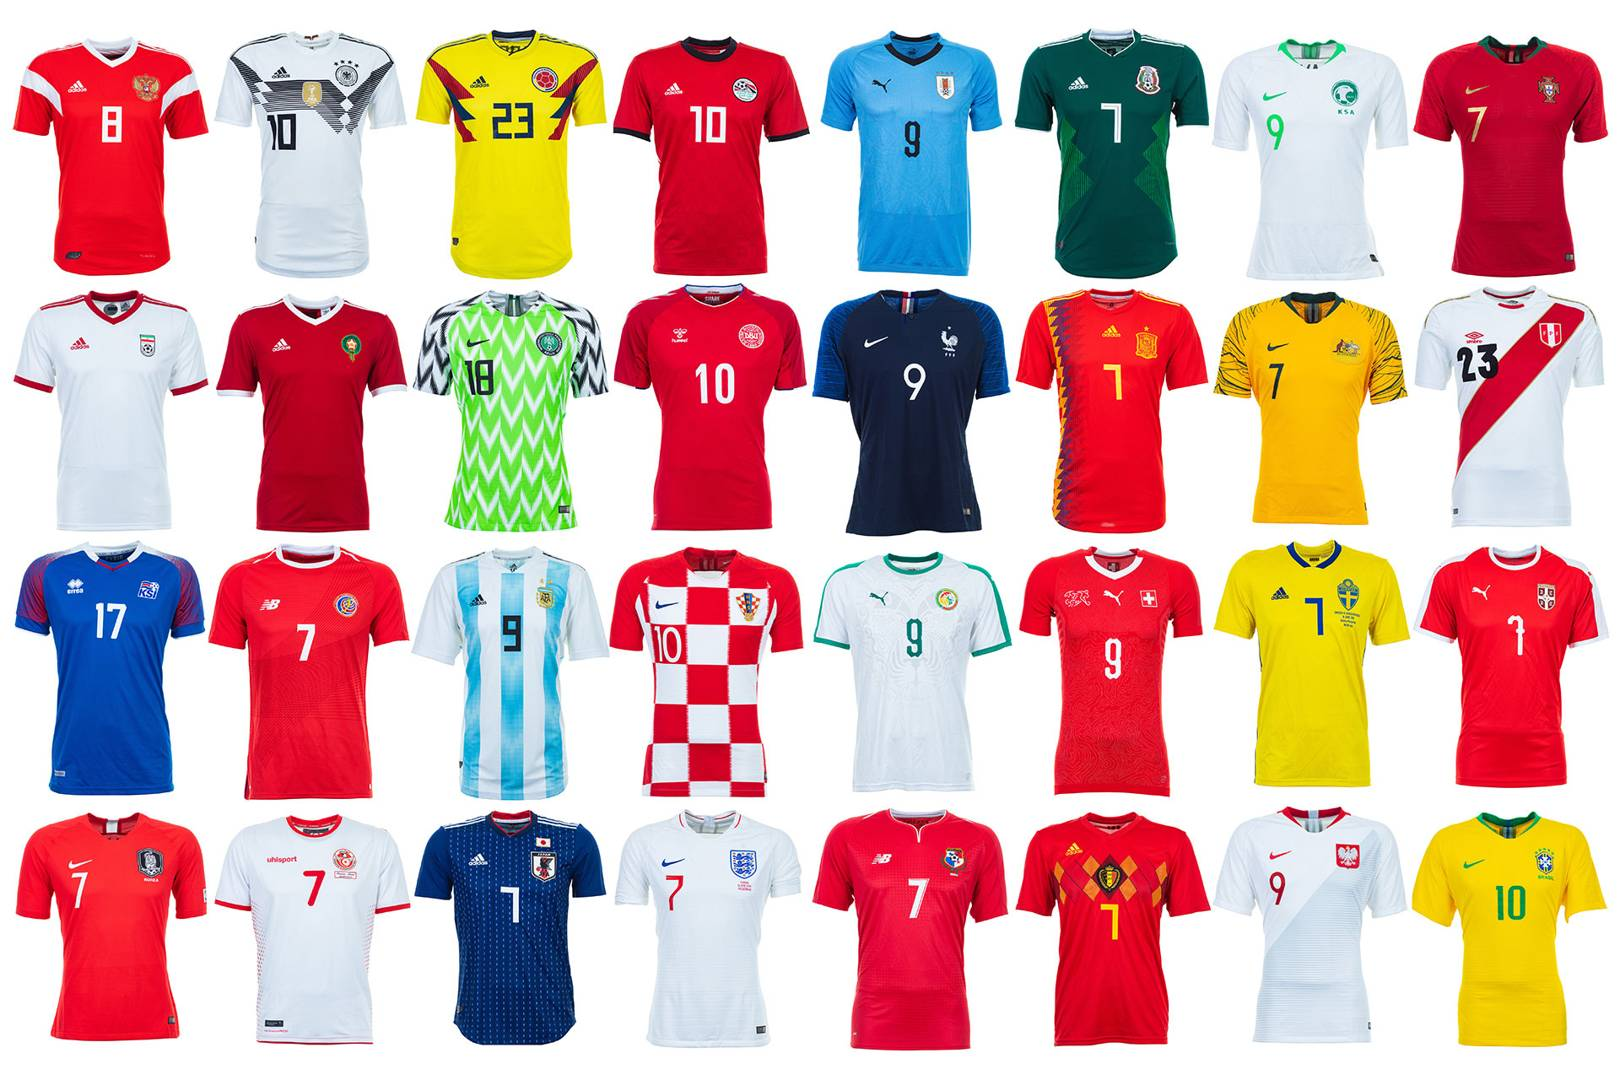 ecf26fcfe89 World Cup 2018 kits ranked: from worst to best | British GQ